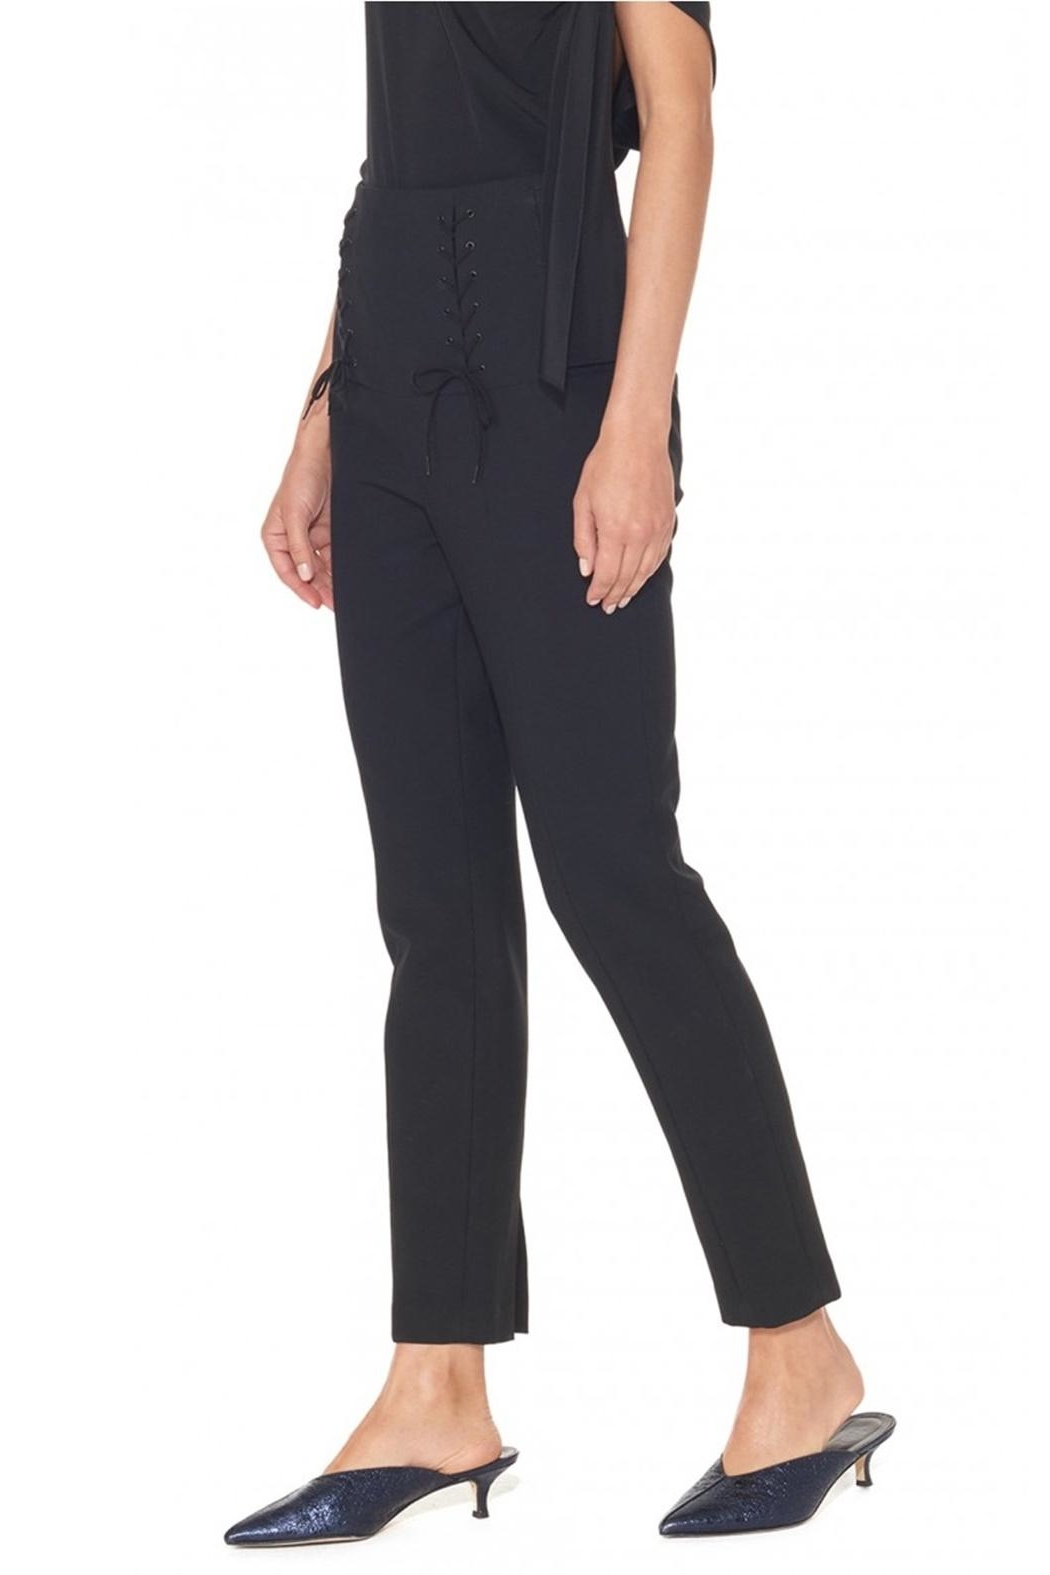 Tibi Anson Tie Pant - Side Cropped Image